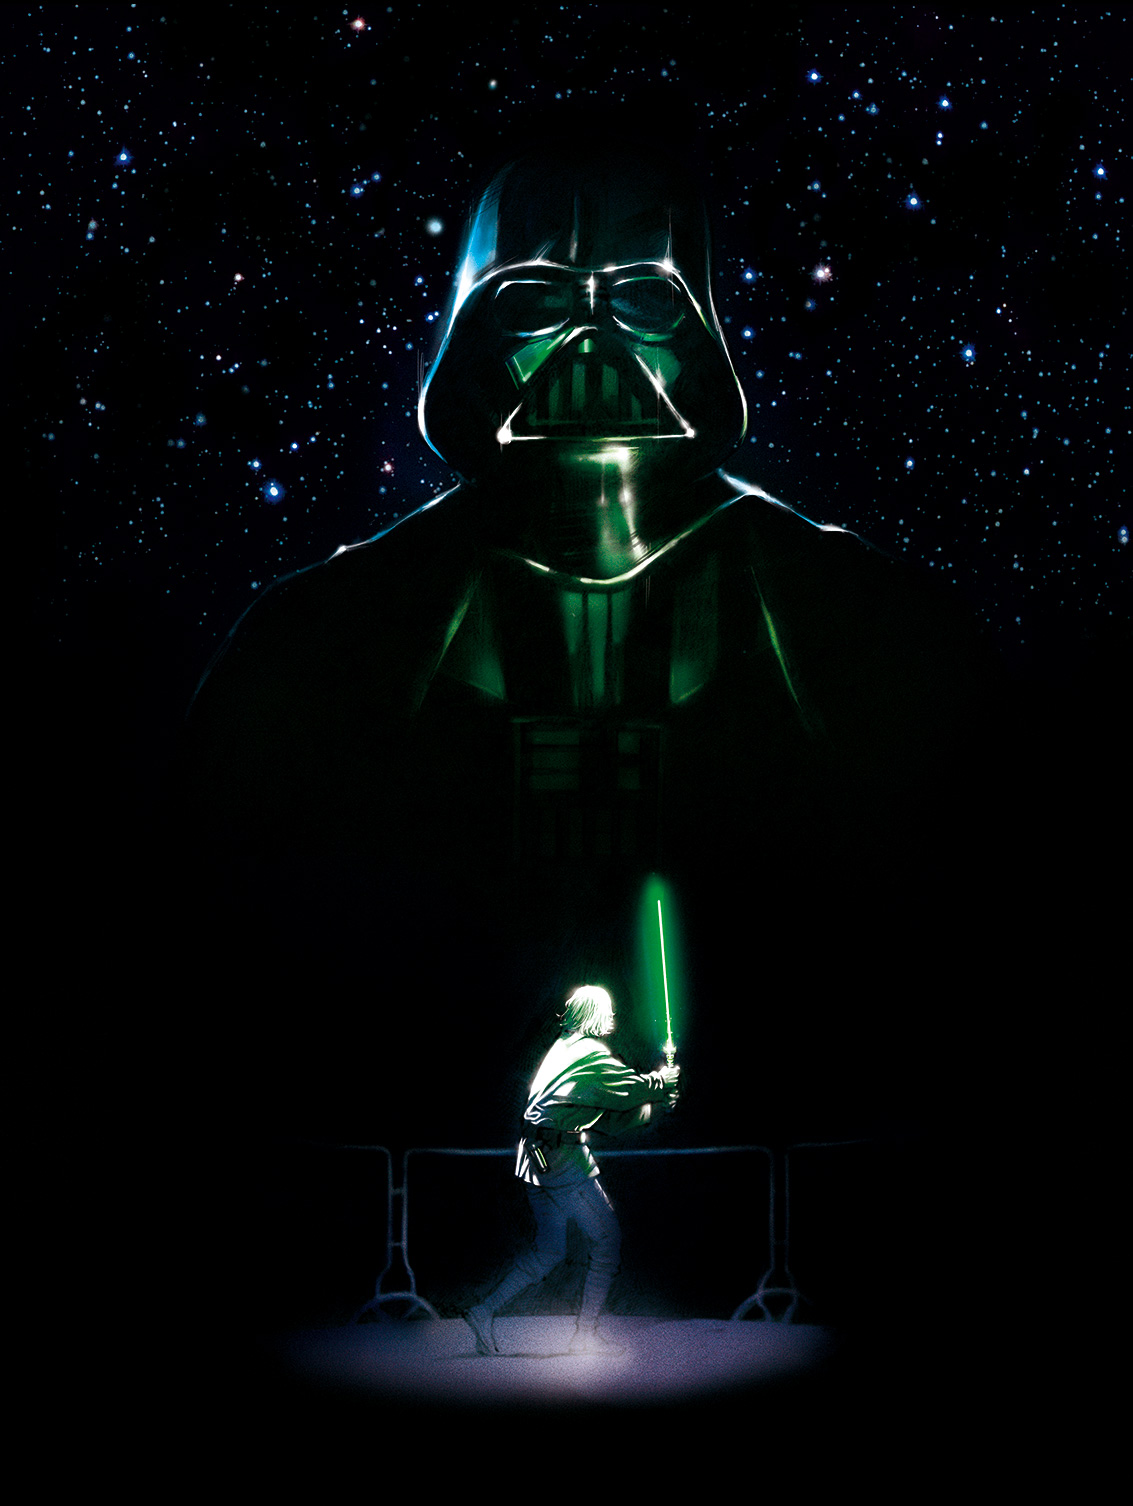 Locandina-mostra-star-Wars-color-WEBjpg_Interviste